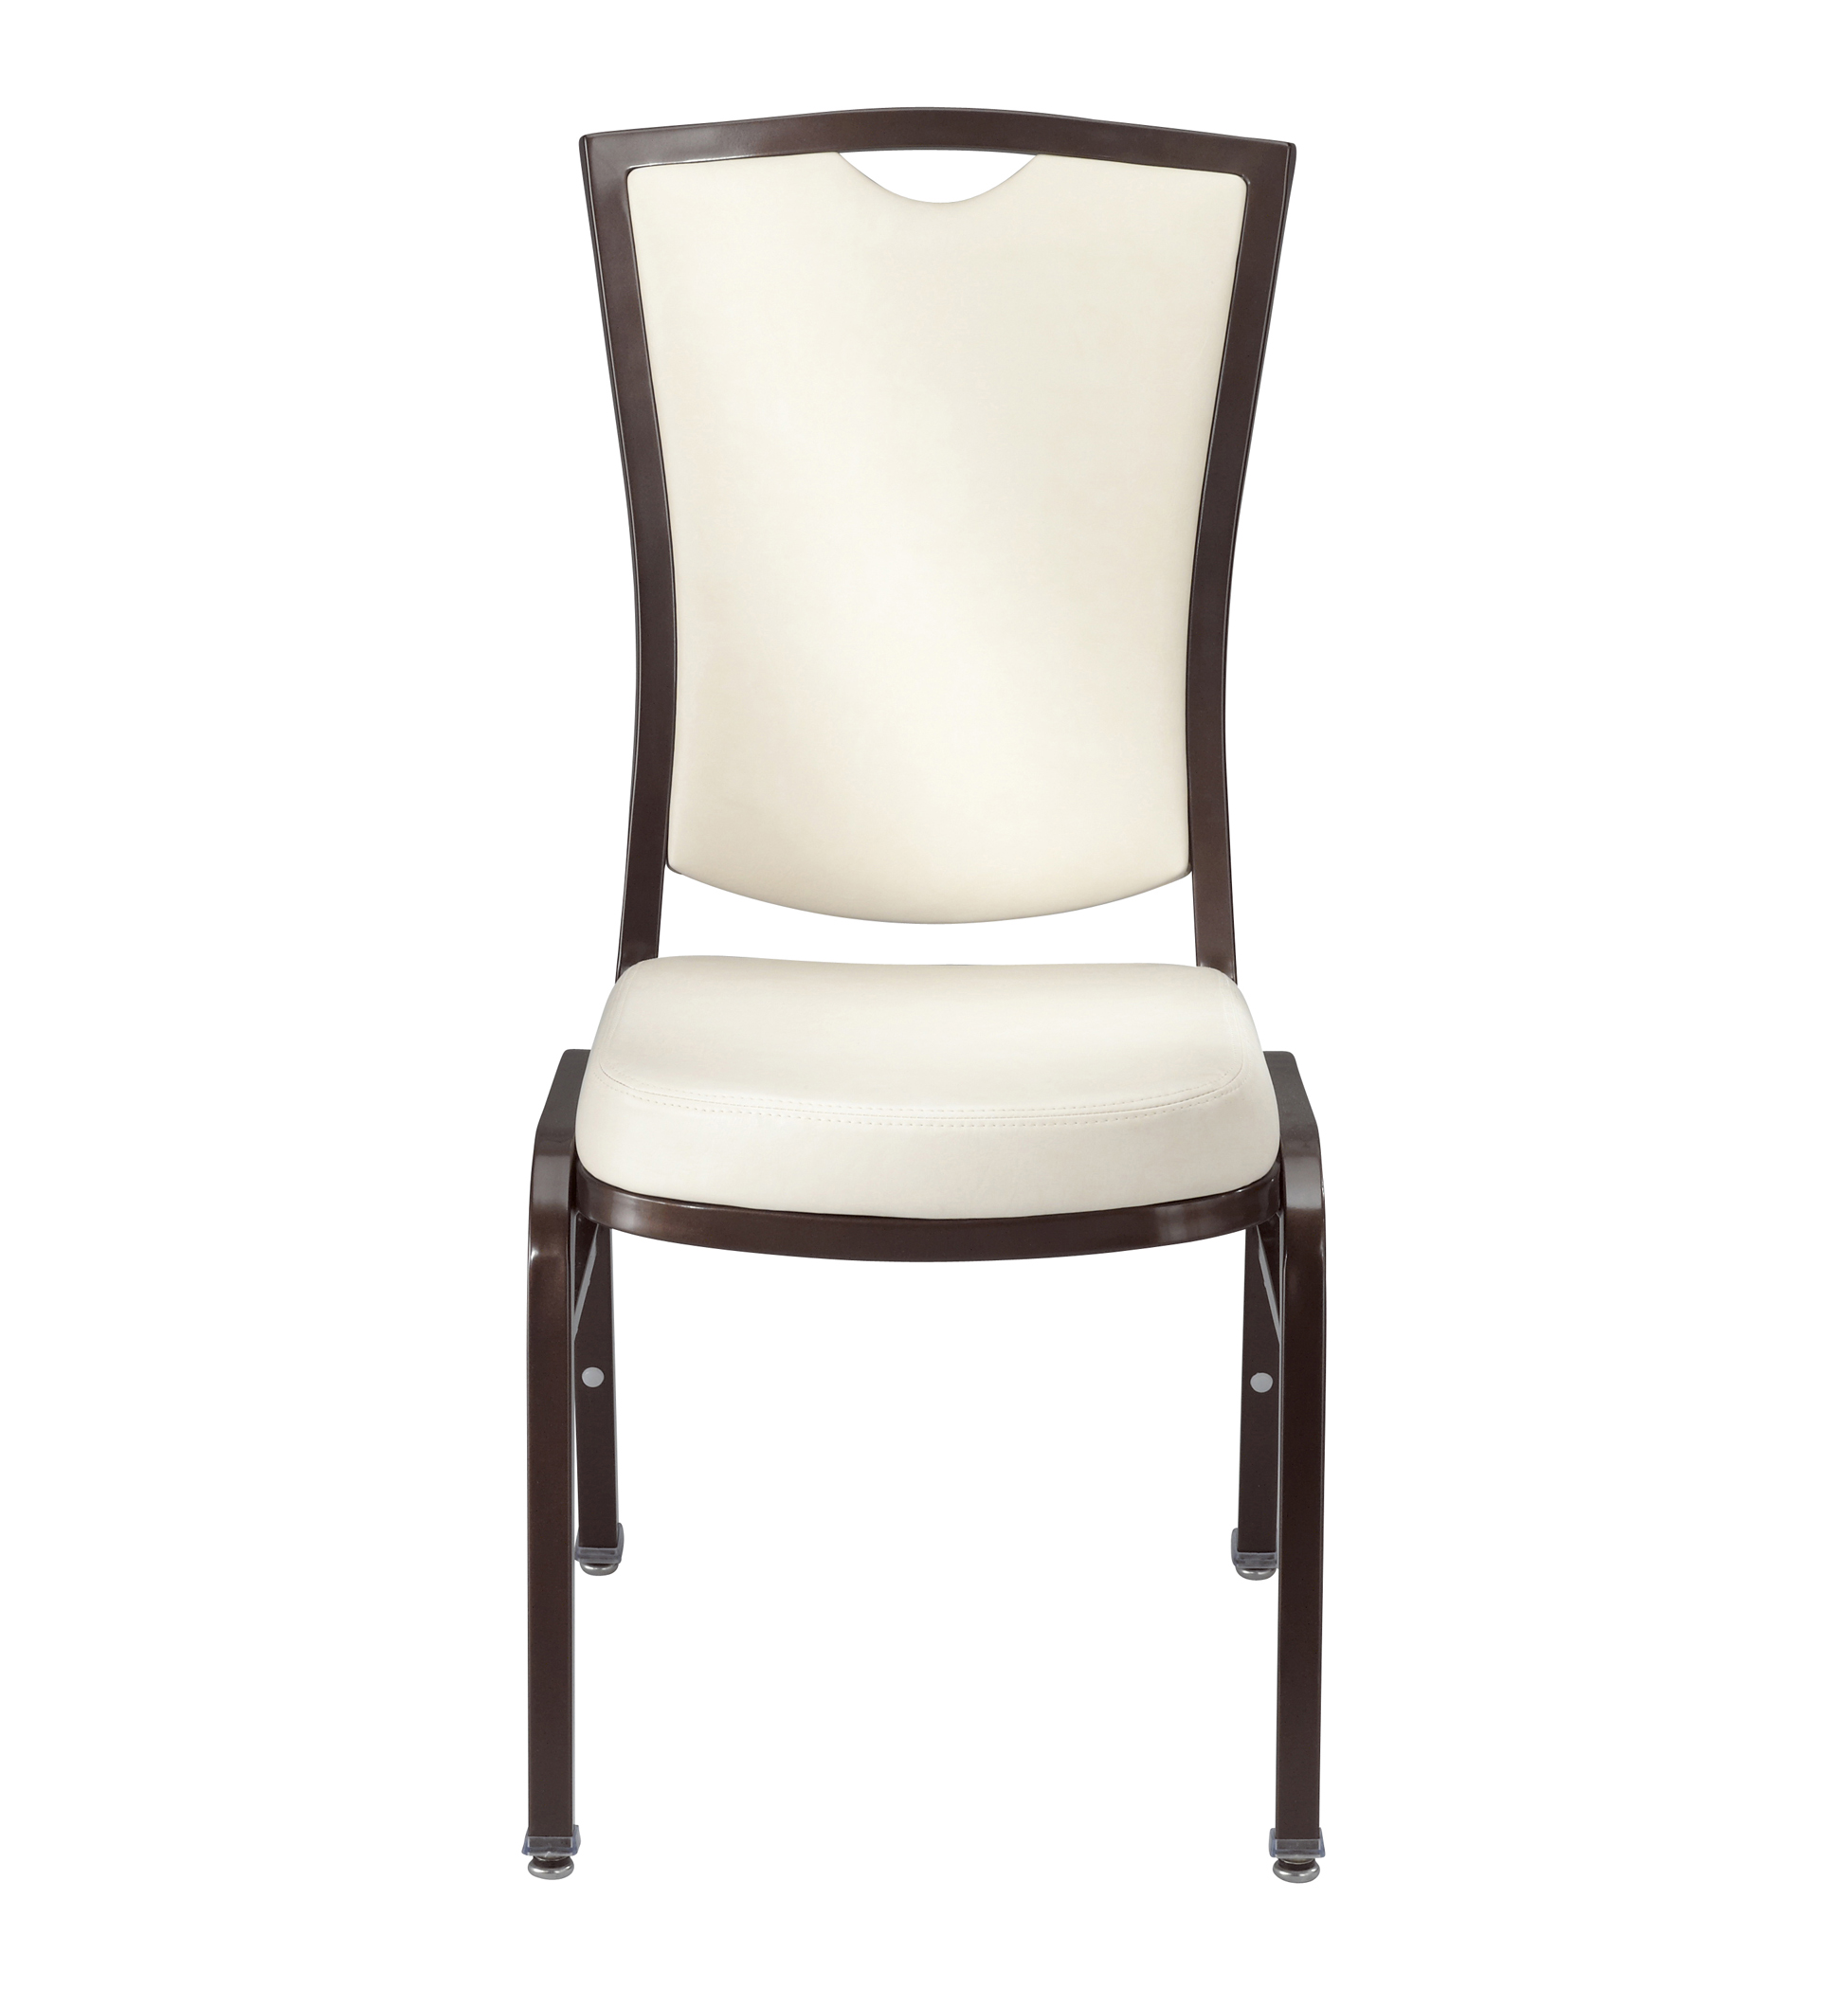 wood banquet chairs. 8668 Aluminum Banquet Chair. SHARE. LOW-RES HI-RES FAVORITES PRINT Wood Chairs E